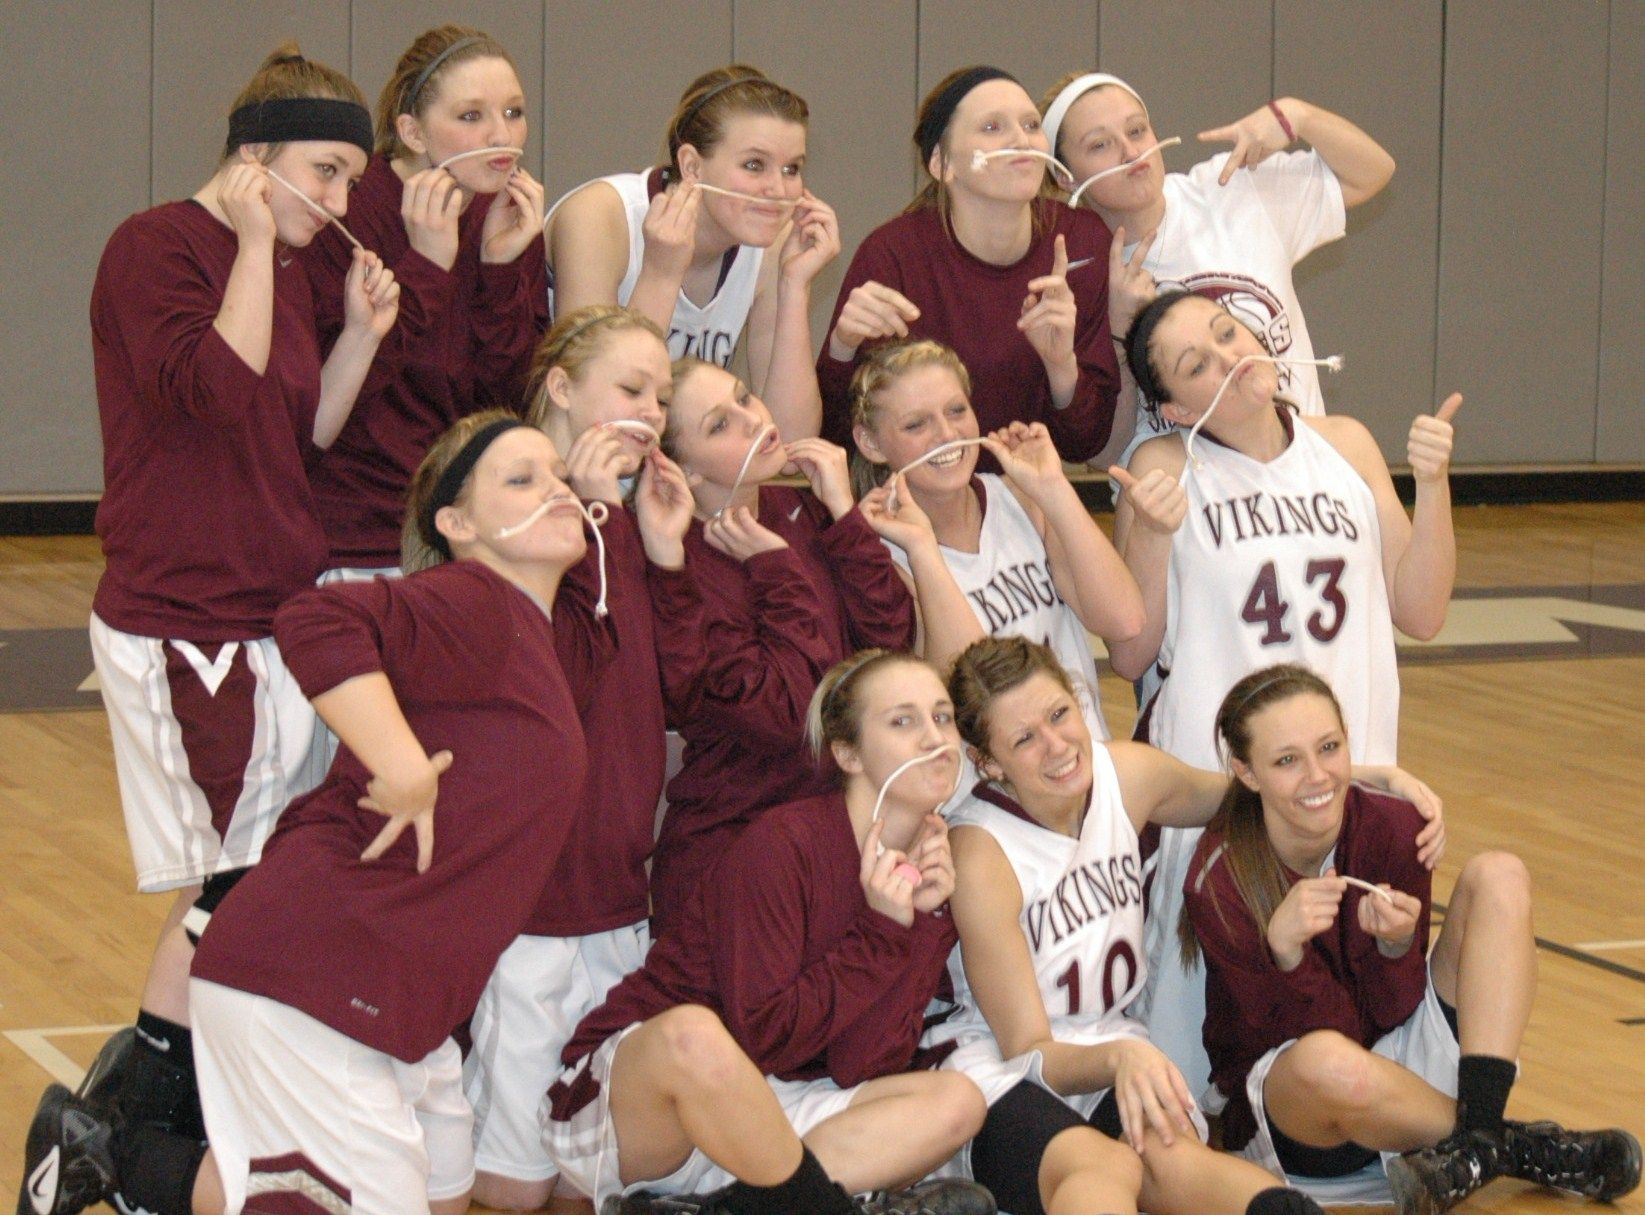 The Vinton County High School Girls Varsity Basketball Team Is Co Tvc Champions After Its Win Over Meigs On Senior Nigh Basketball Teams Teams Basketball Girls